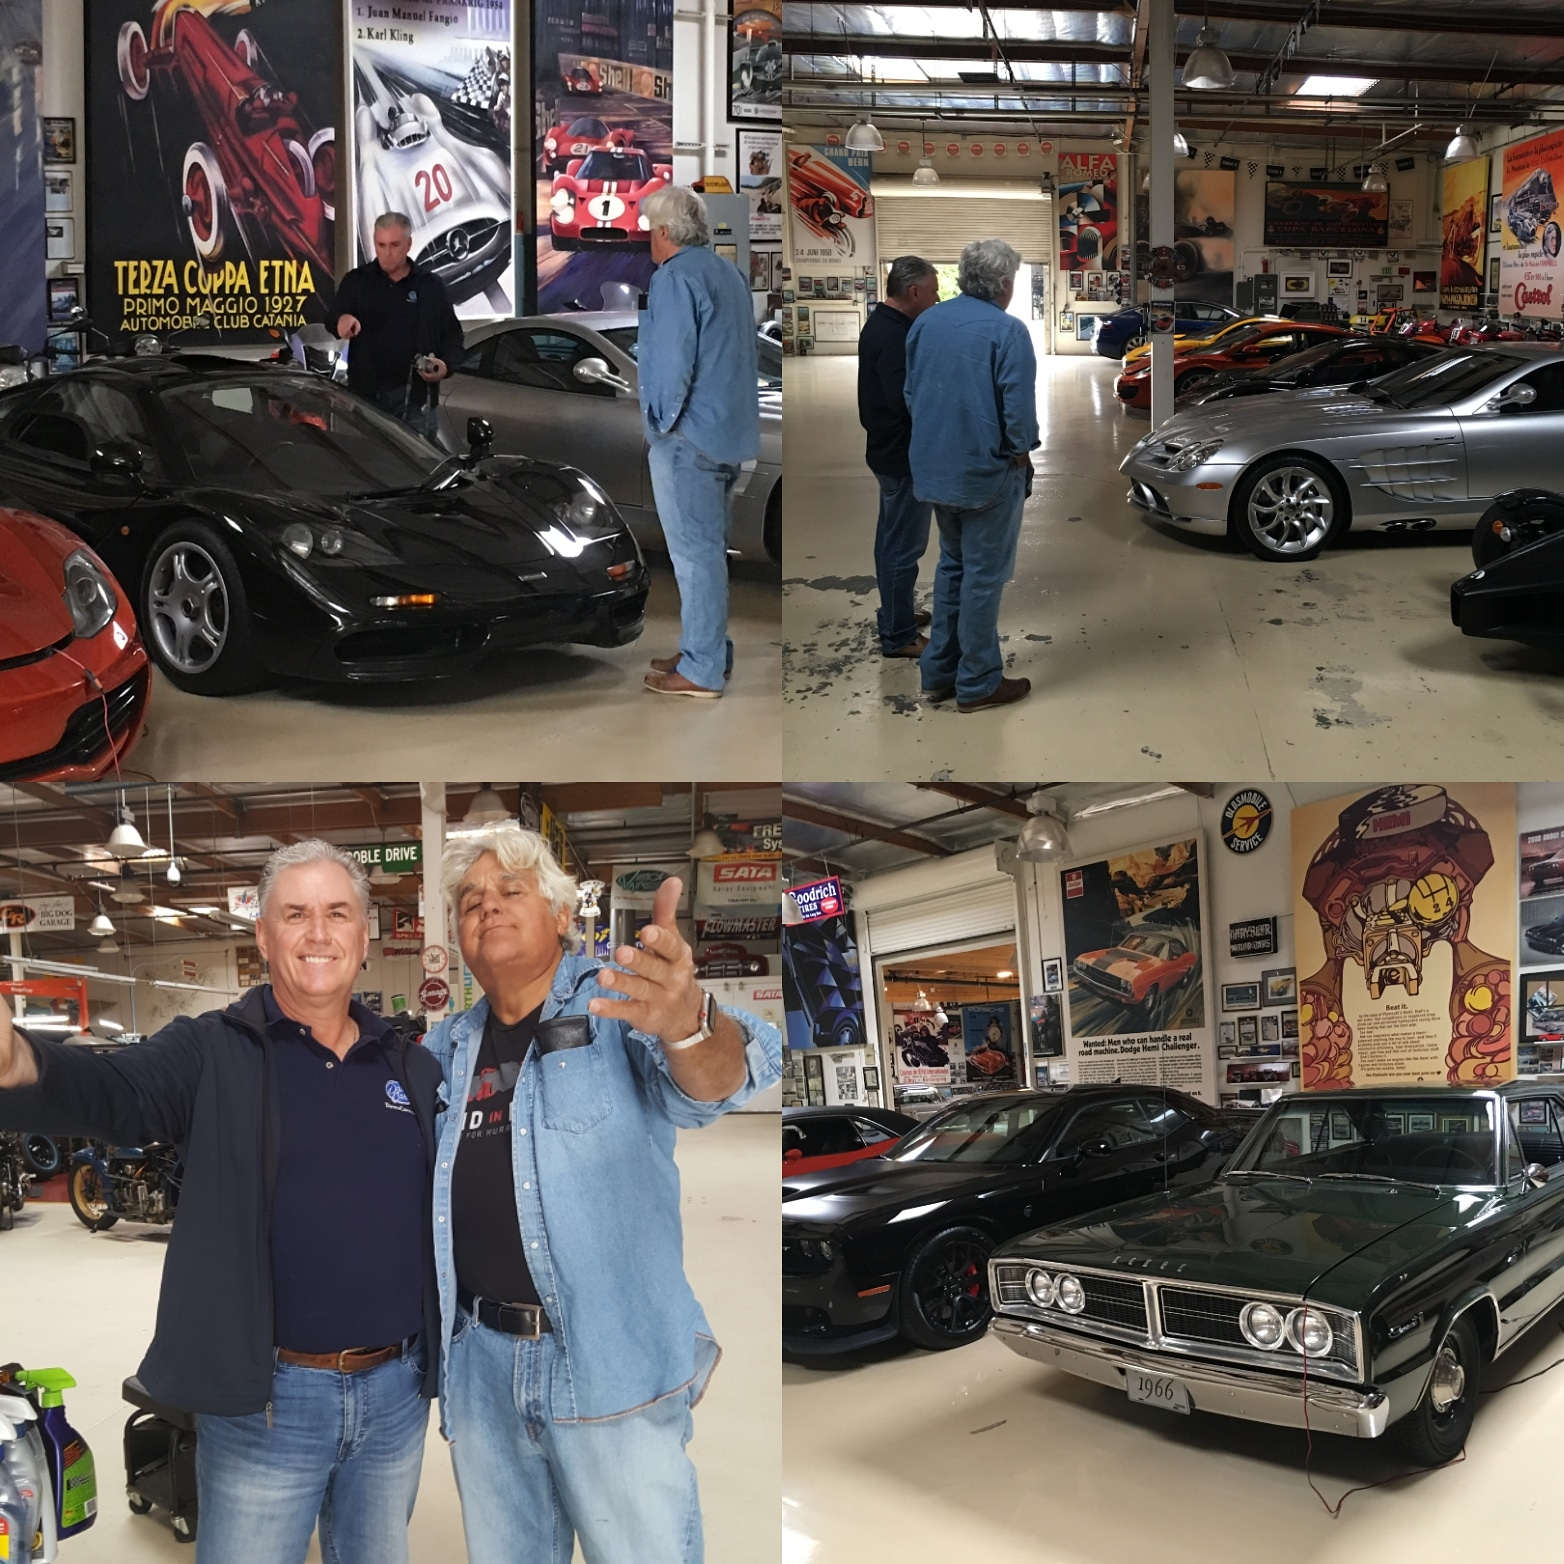 """Wendy and I would like to thank Jay Leno and the guys at the Big Dog Garage for their generous hospitality while we were in SoCAL recently. Jay and I had met while he was in town a few years back to do a cameo for a movie. He and I had been chatting about a Chrylser I had on consignment and wanted to come by and check the car out while he was in town. Fast forward to 2018 - I had emailed Jay about coming by to see the garage and to our surprise (not really, he's such a down to earth guy) he was available and welcomed us to come by the shop. I can't think of anyone that has done more to promote and create awareness for the classic car / motorcycle hobby than the """"Big Dog"""" himself - thanks again Jay!  If you'd like to see ALL the pics we took at Jay Leno's Garage -  CLICK HERE!"""